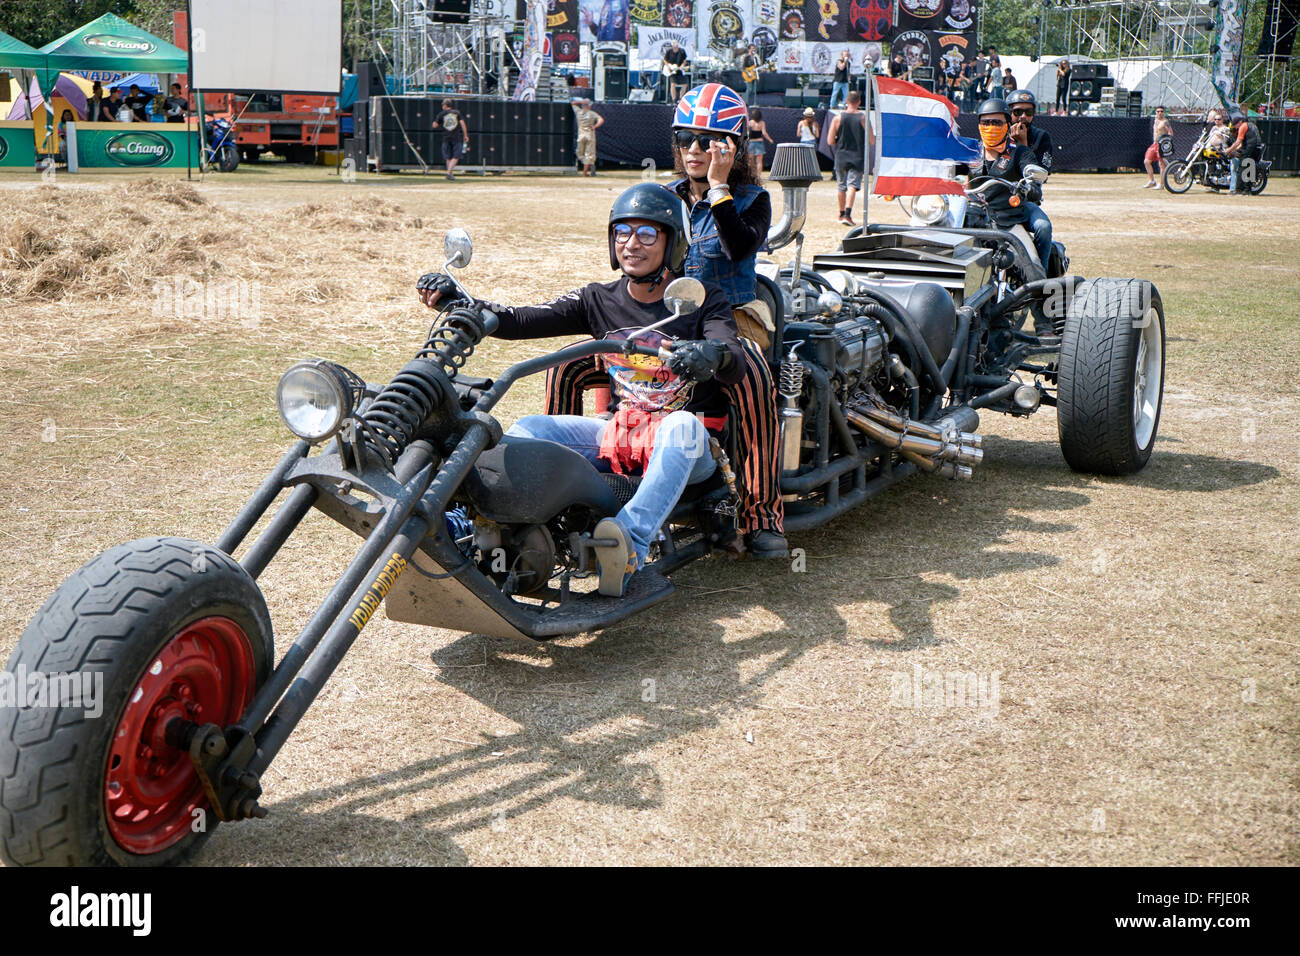 Extremely stretched custom motorcycle at the 2016 Burapha bike festival Pattaya Thailand S. E. Asia. - Stock Image